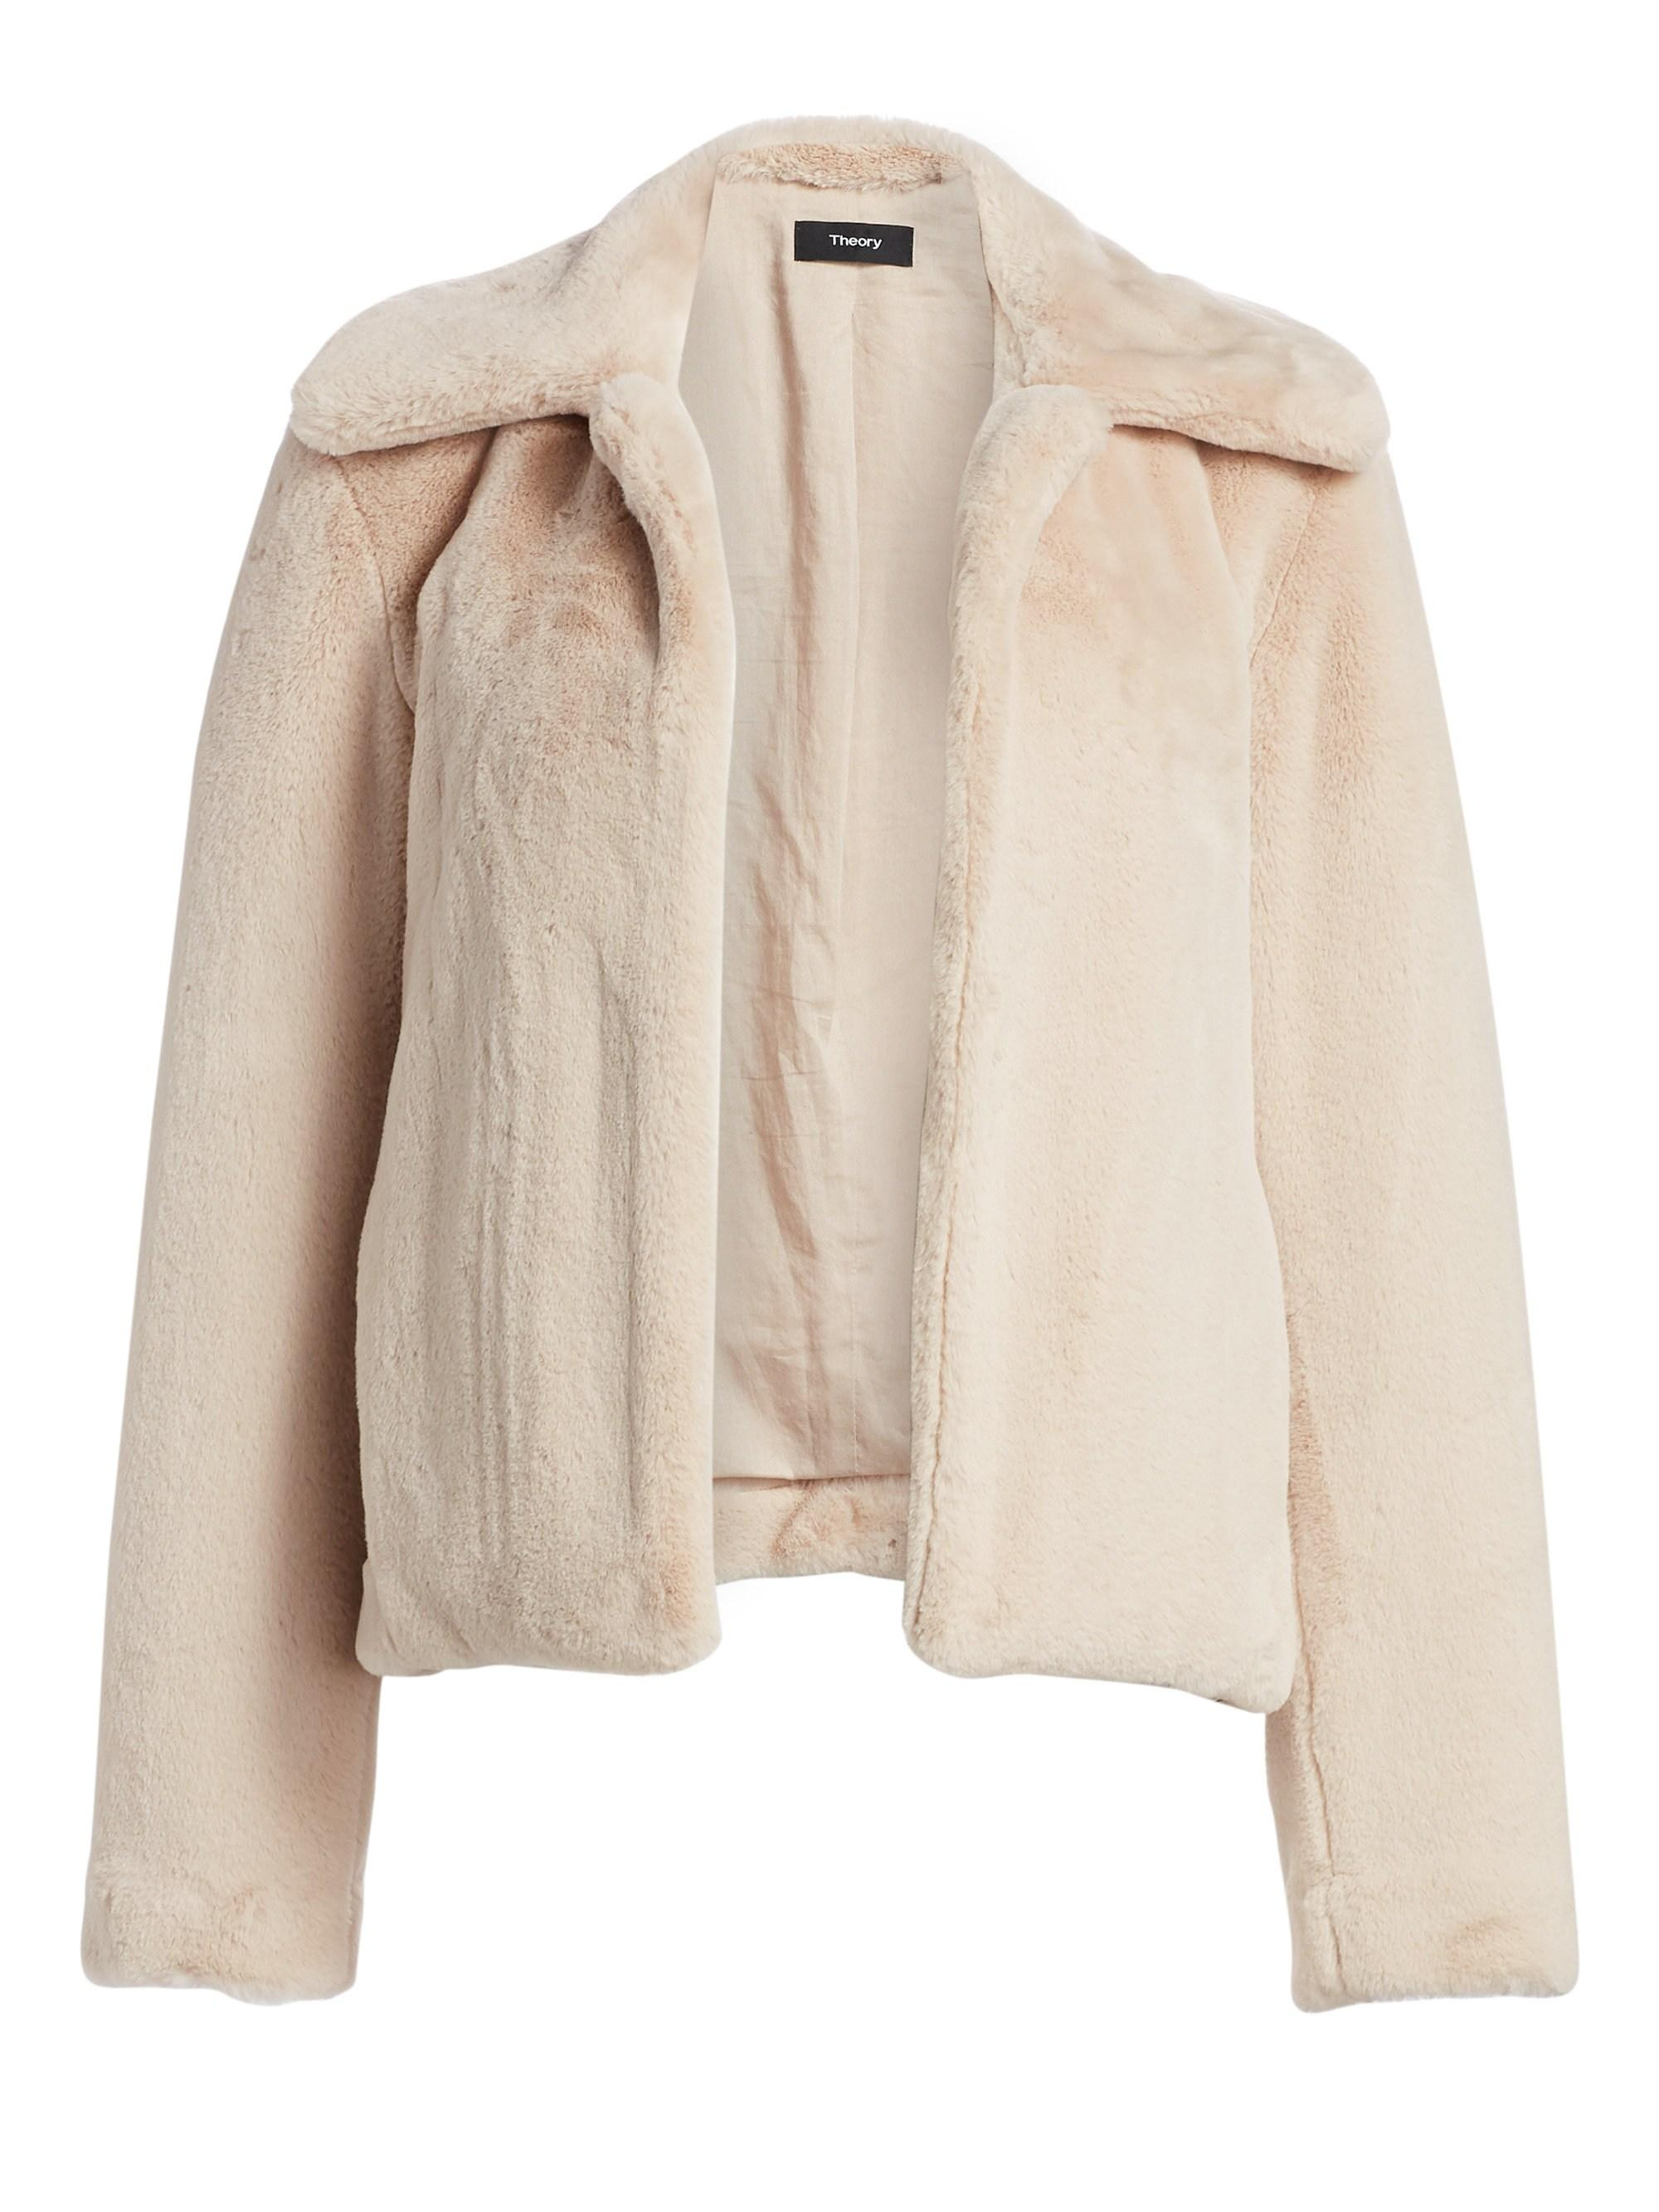 cdcd1d8474 Lyst - Theory Luxe Faux Fur Jacket in Natural